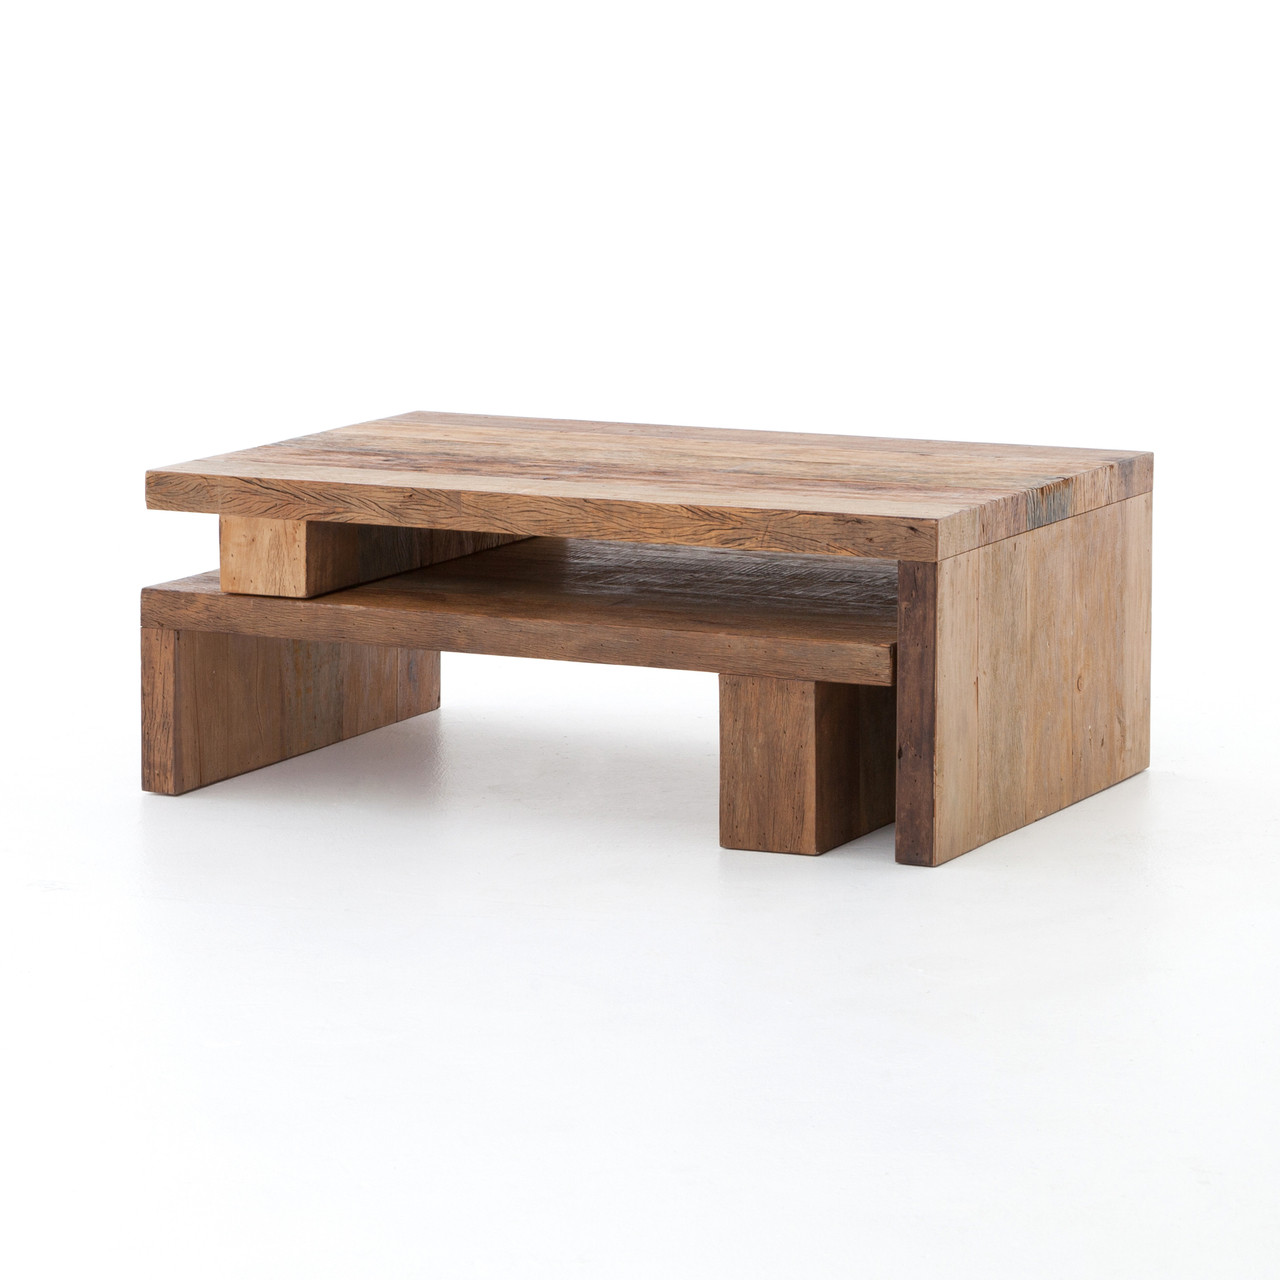 Awe Inspiring Ferris Reclaimed Wood Modular Nesting Coffee Table Alphanode Cool Chair Designs And Ideas Alphanodeonline